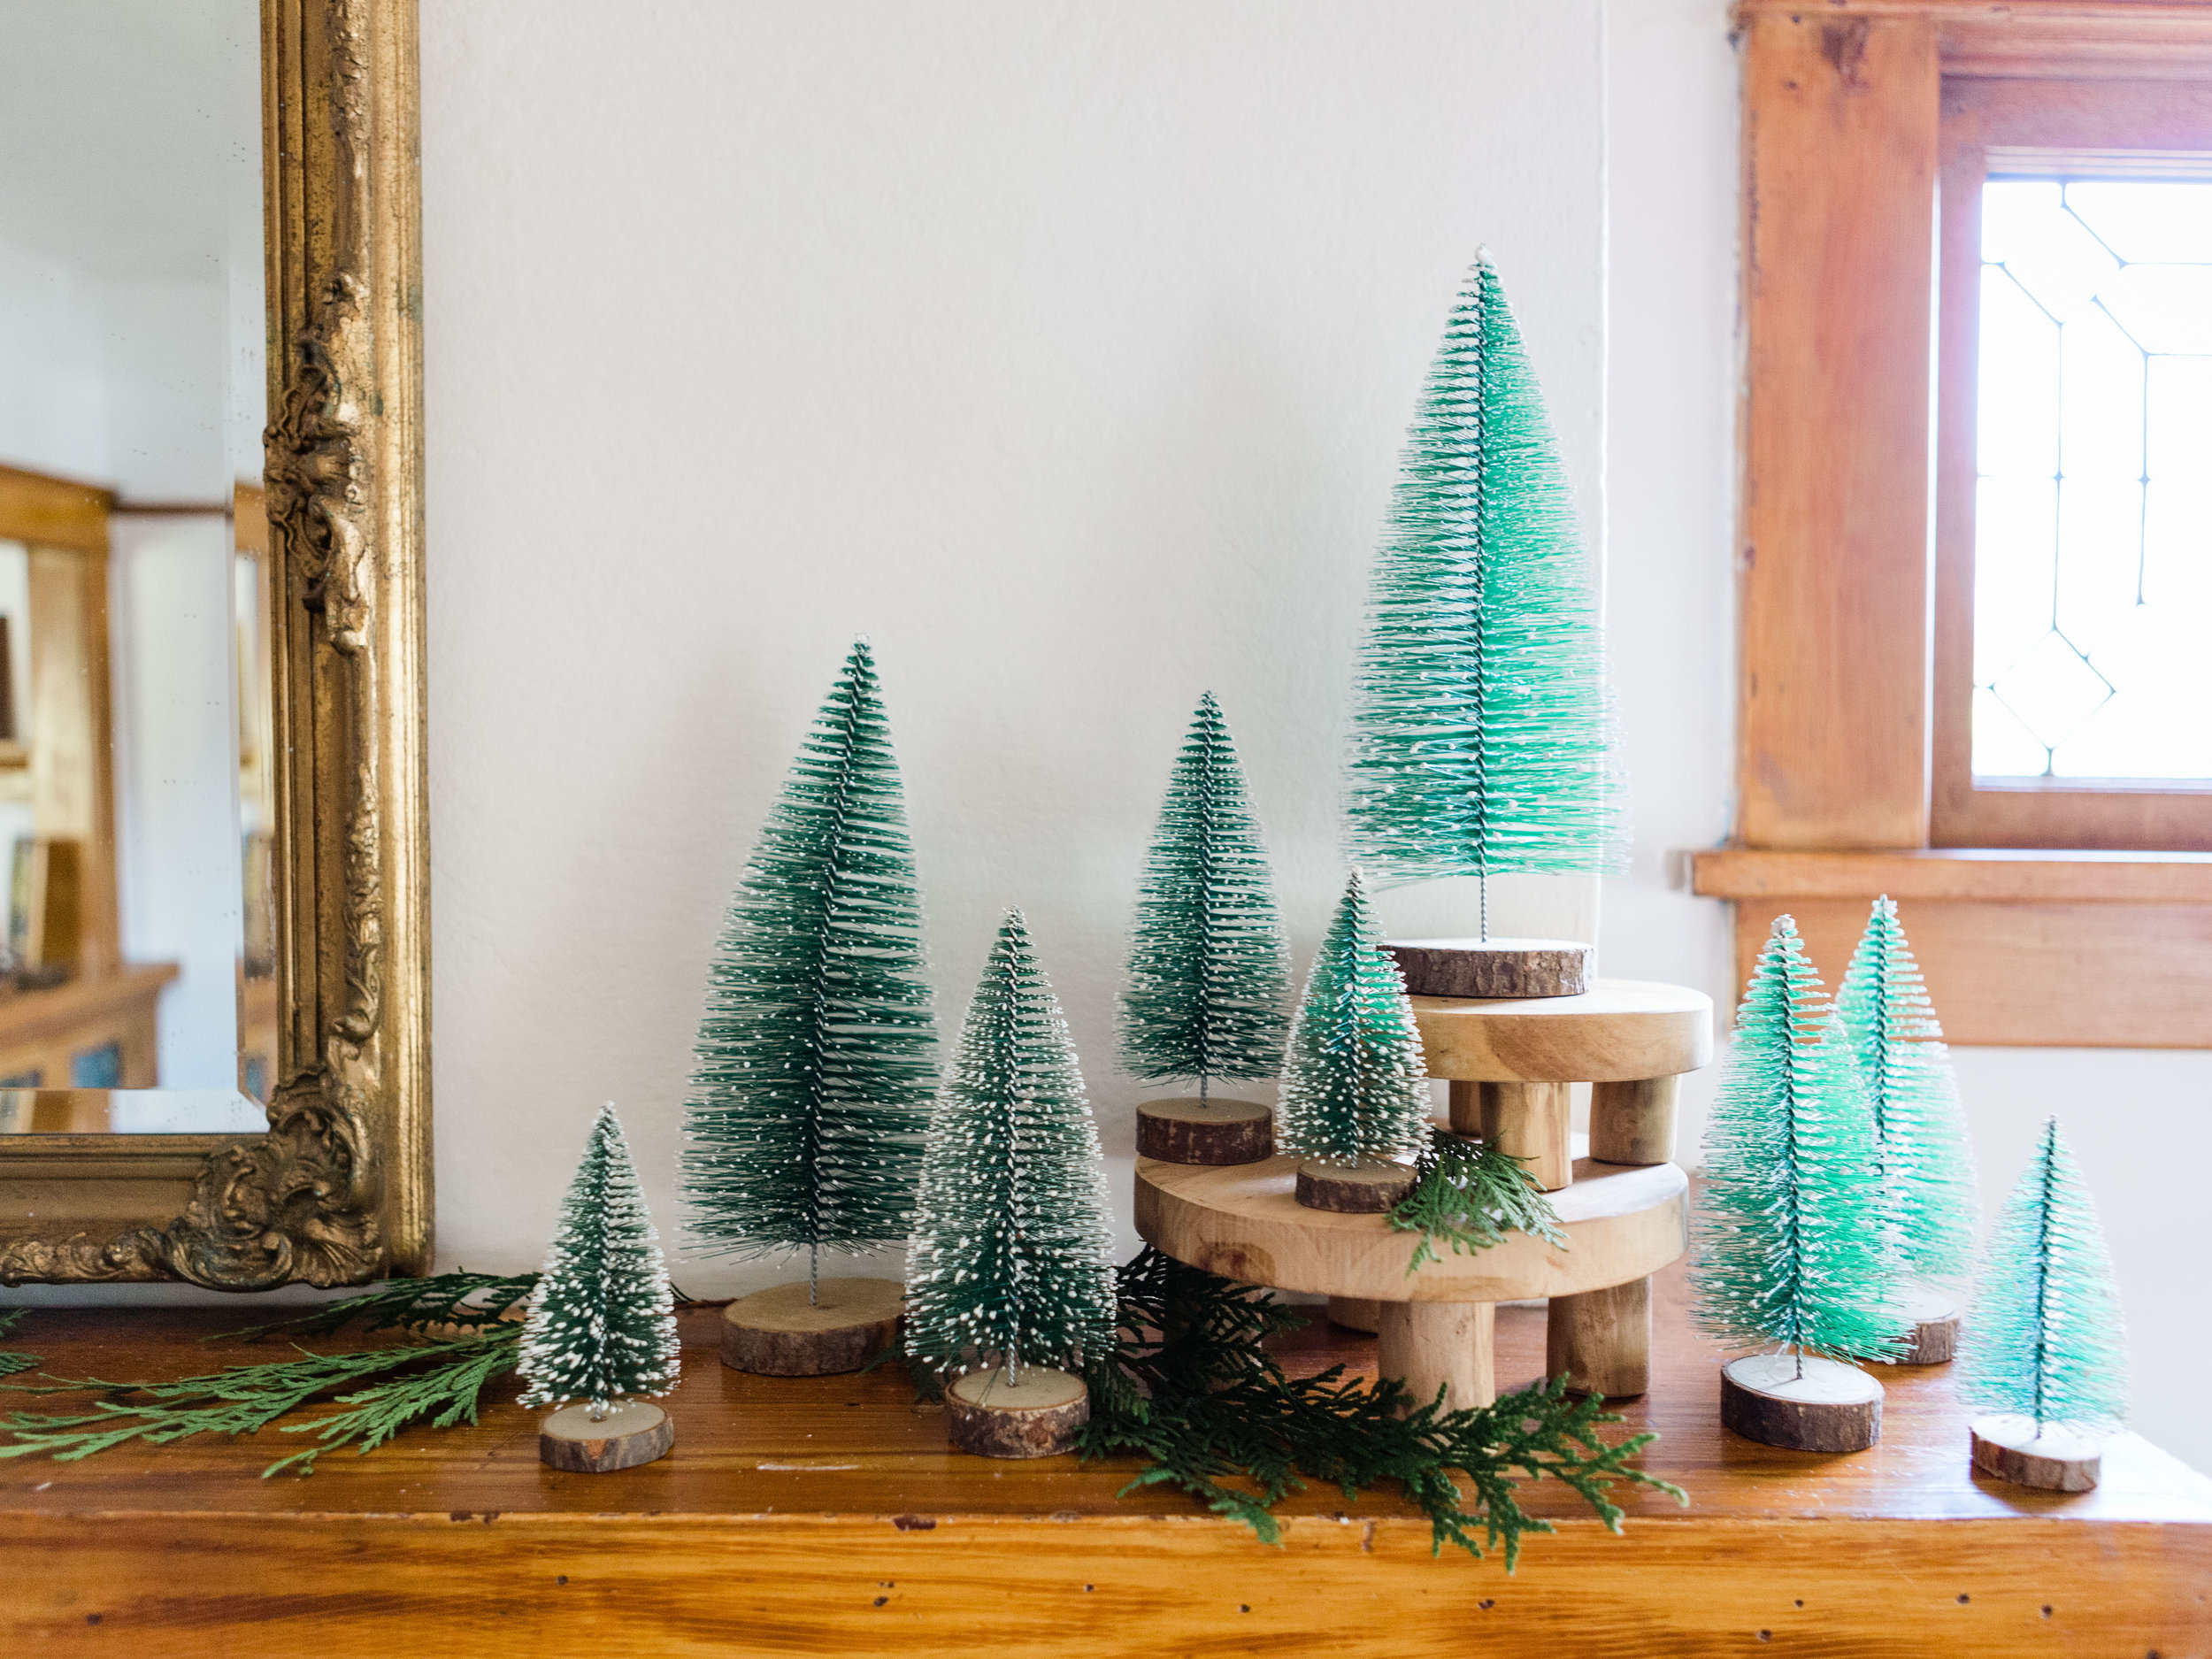 Bottle brush trees on holiday mantle from Foragedhome.com